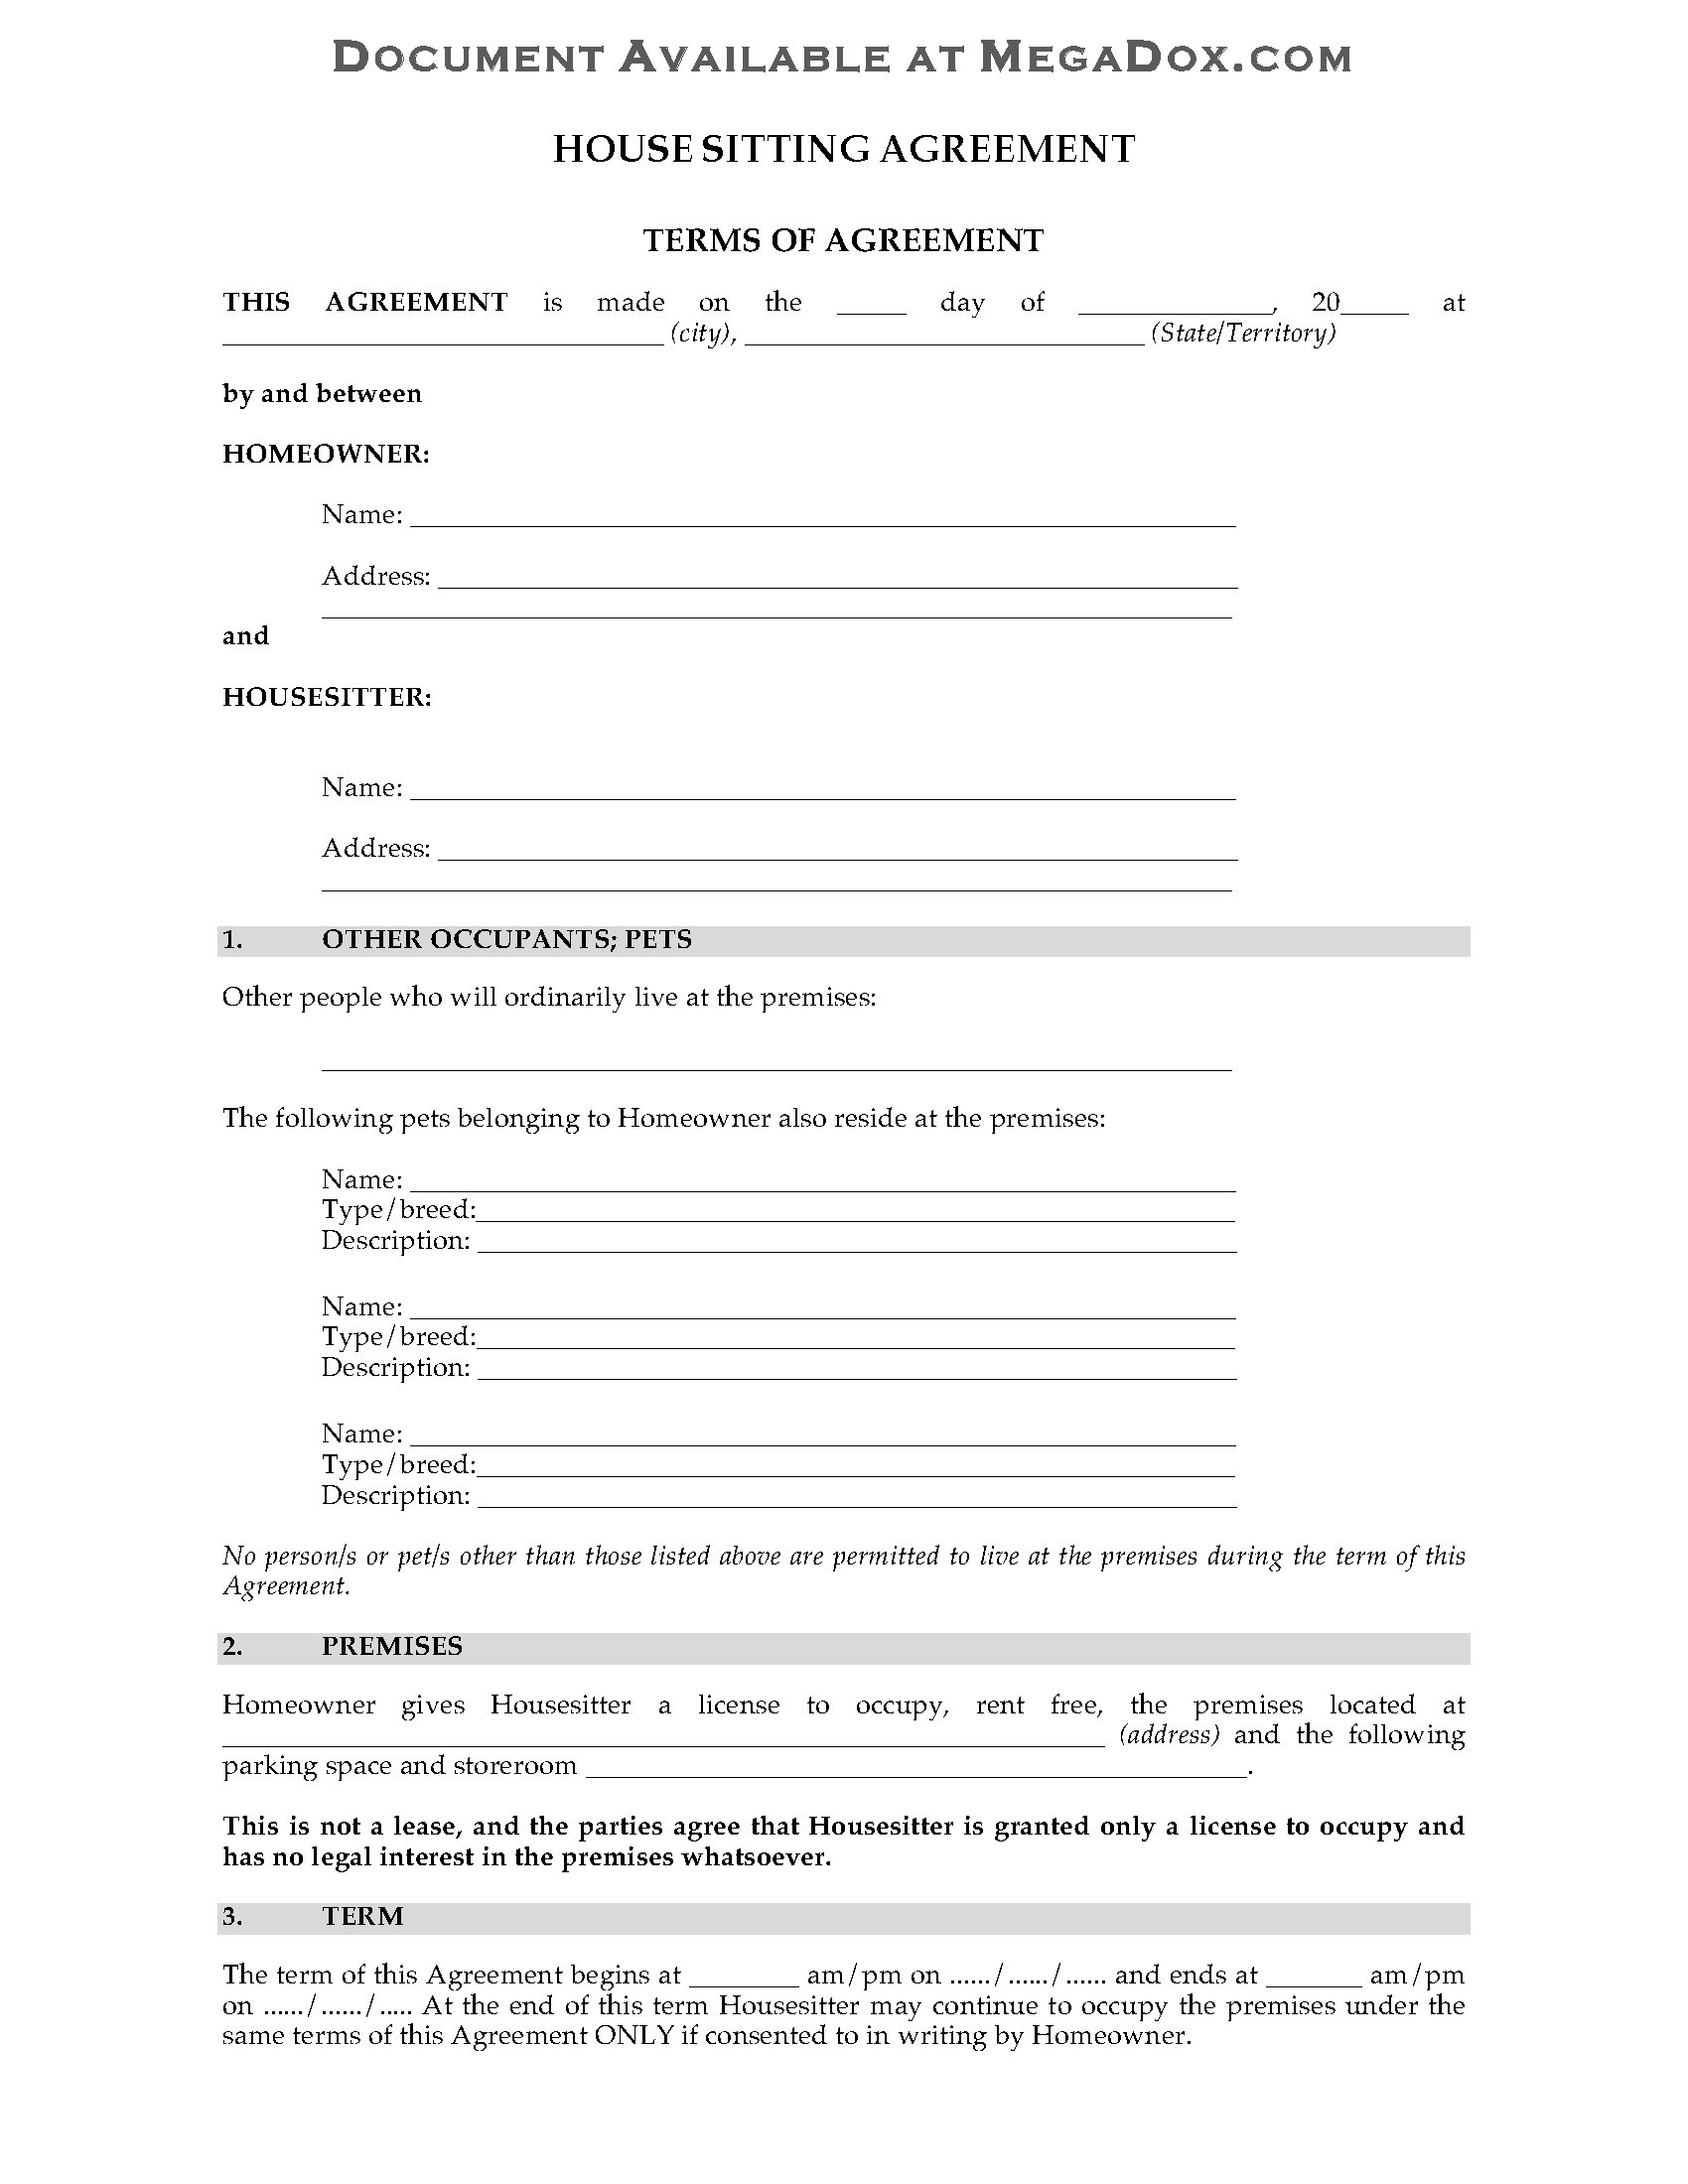 Australia House Sitting Agreement Form   Legal Forms and Business ...